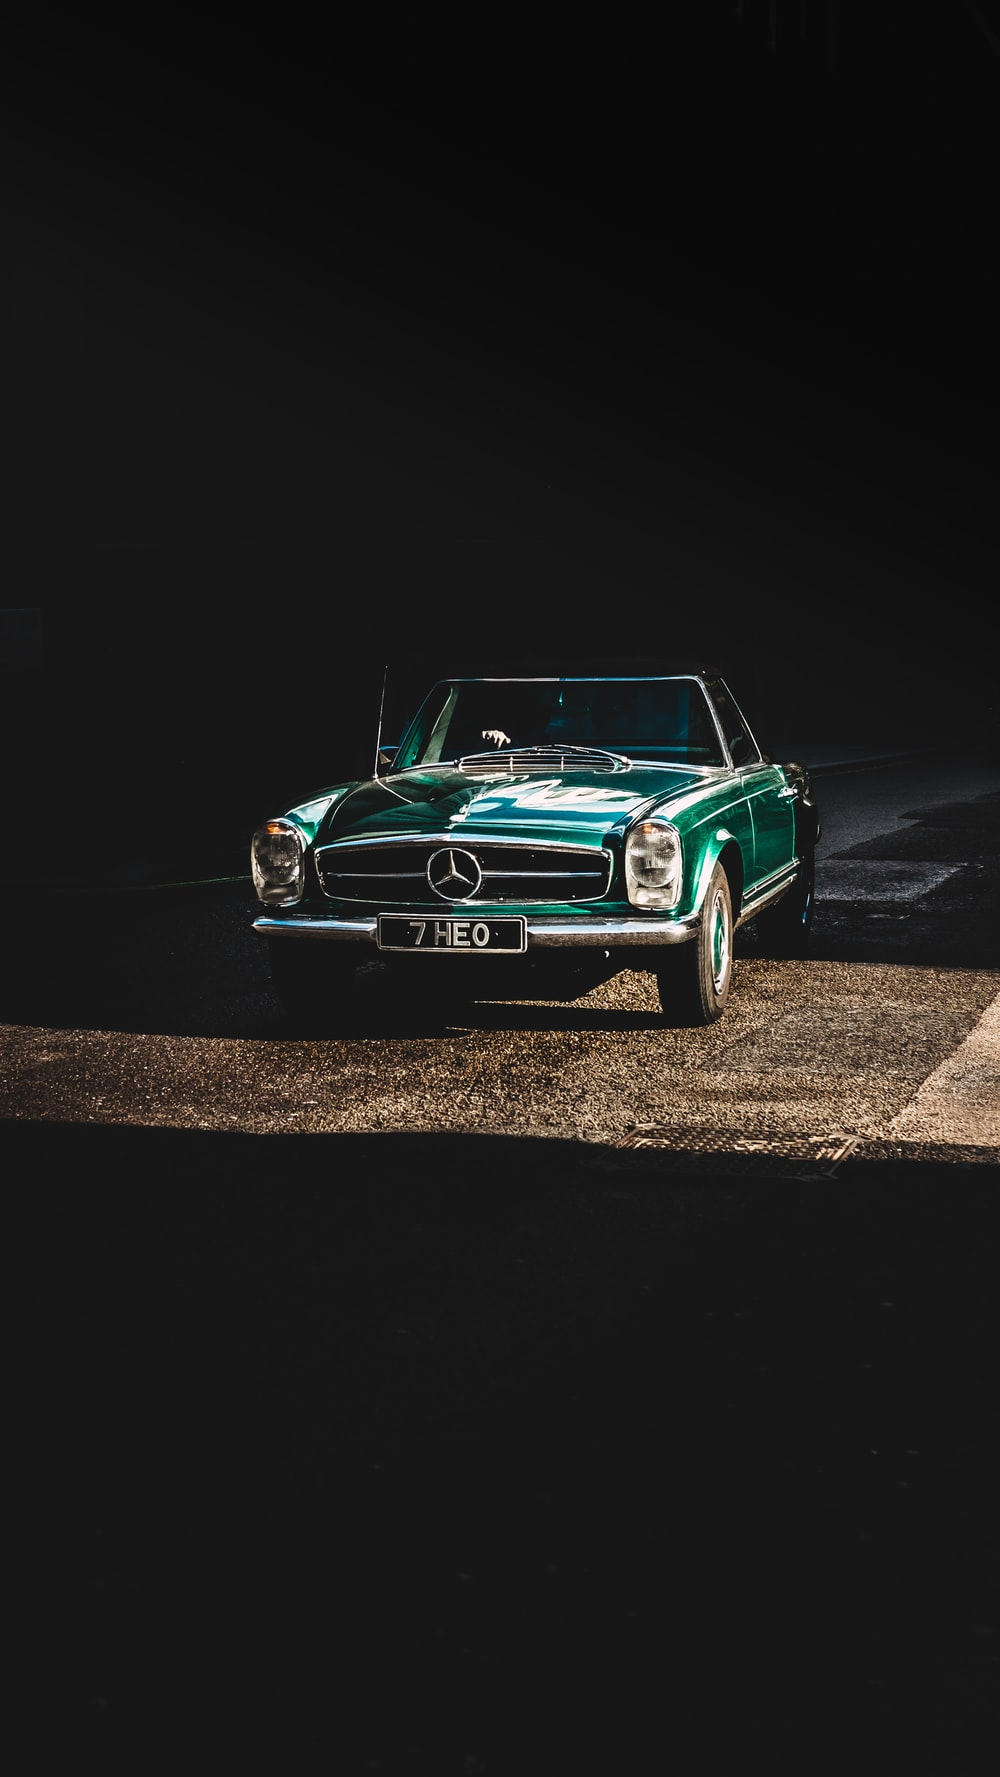 750 Vintage Car Pictures Hd Download Free Images On Unsplash